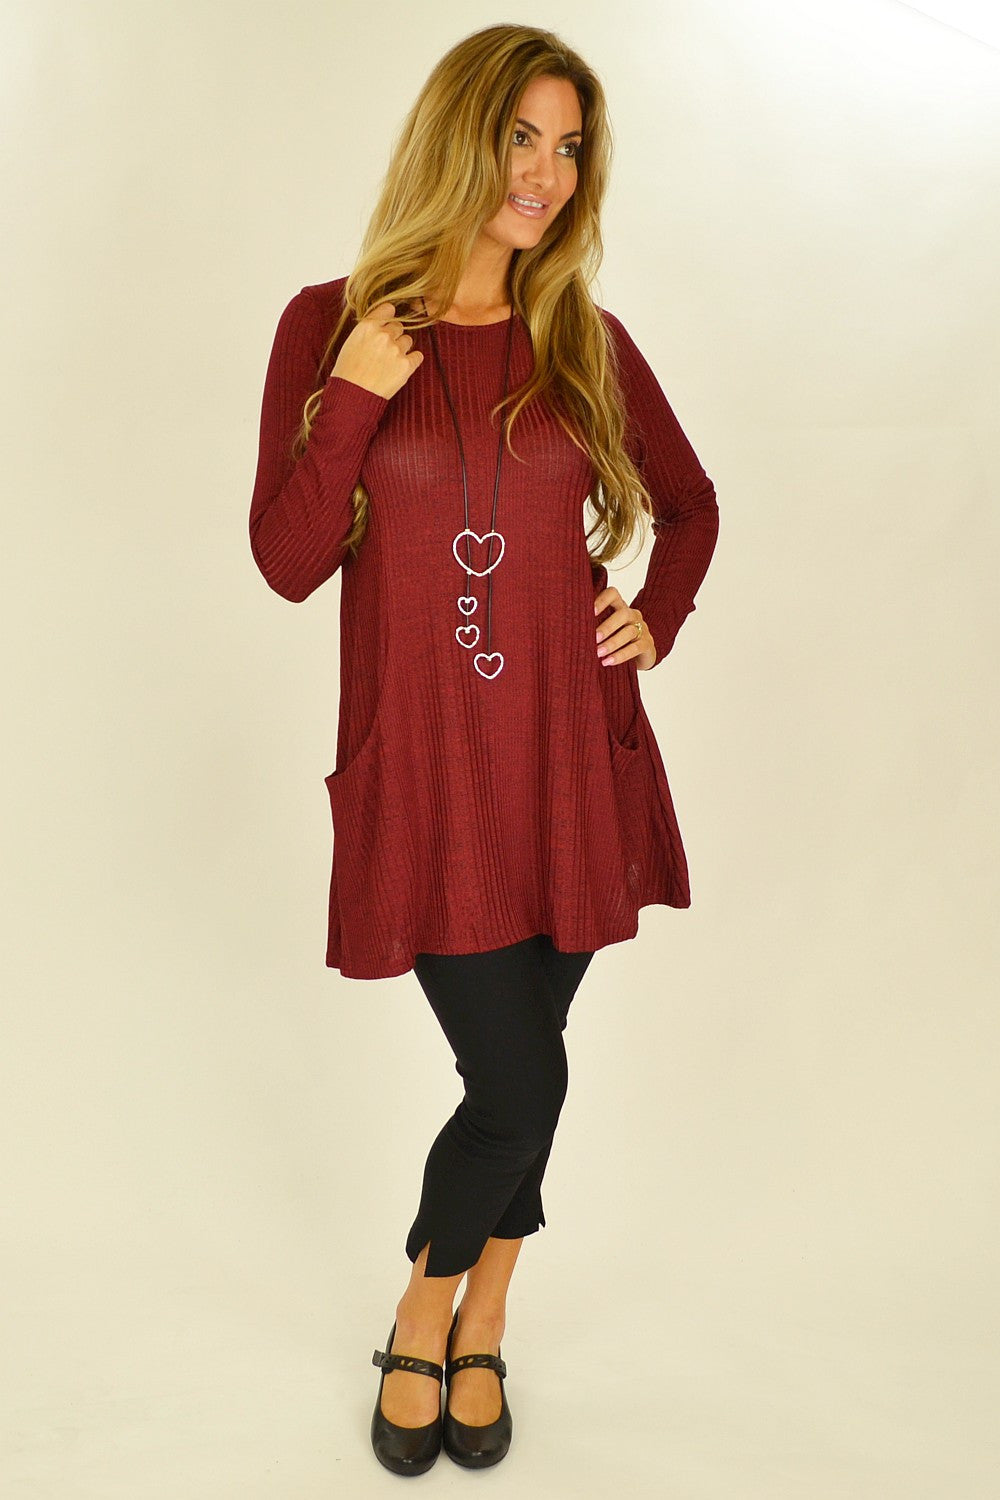 Red Lucy Line Tunic - at I Love Tunics @ www.ilovetunics.com = Number One! Tunics Destination